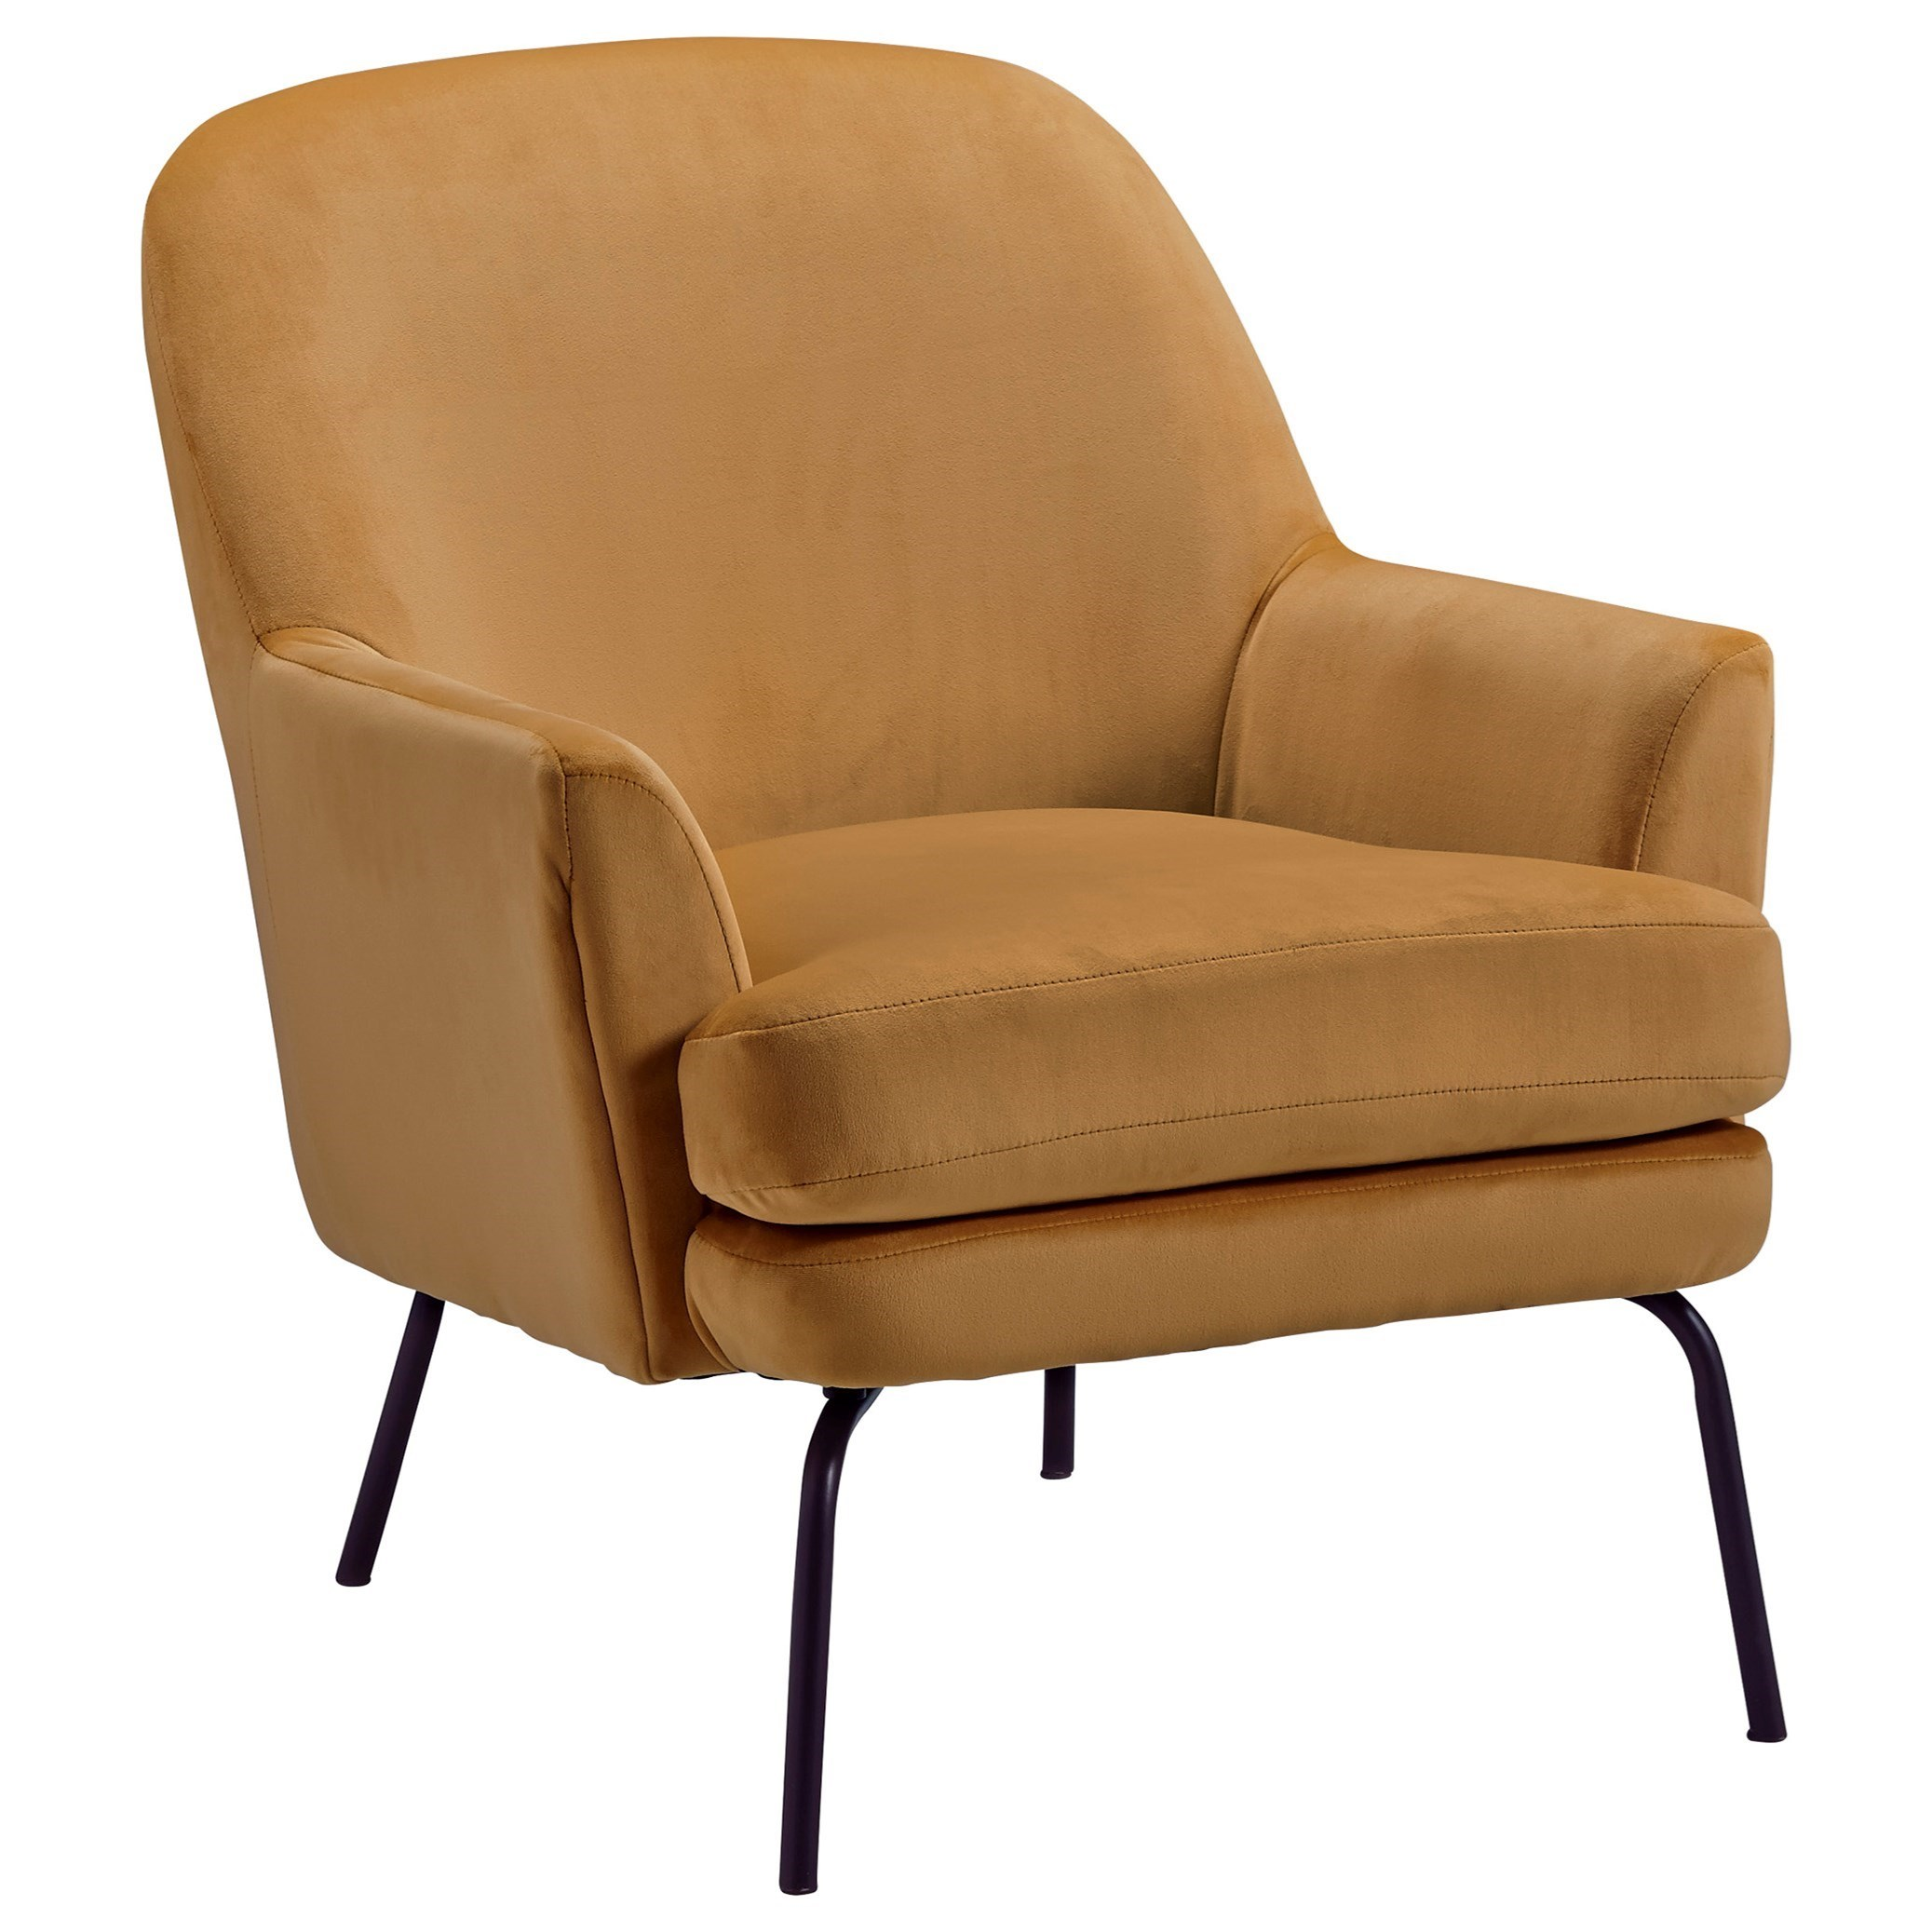 Dericka Accent Chair by Ashley (Signature Design) at Johnny Janosik